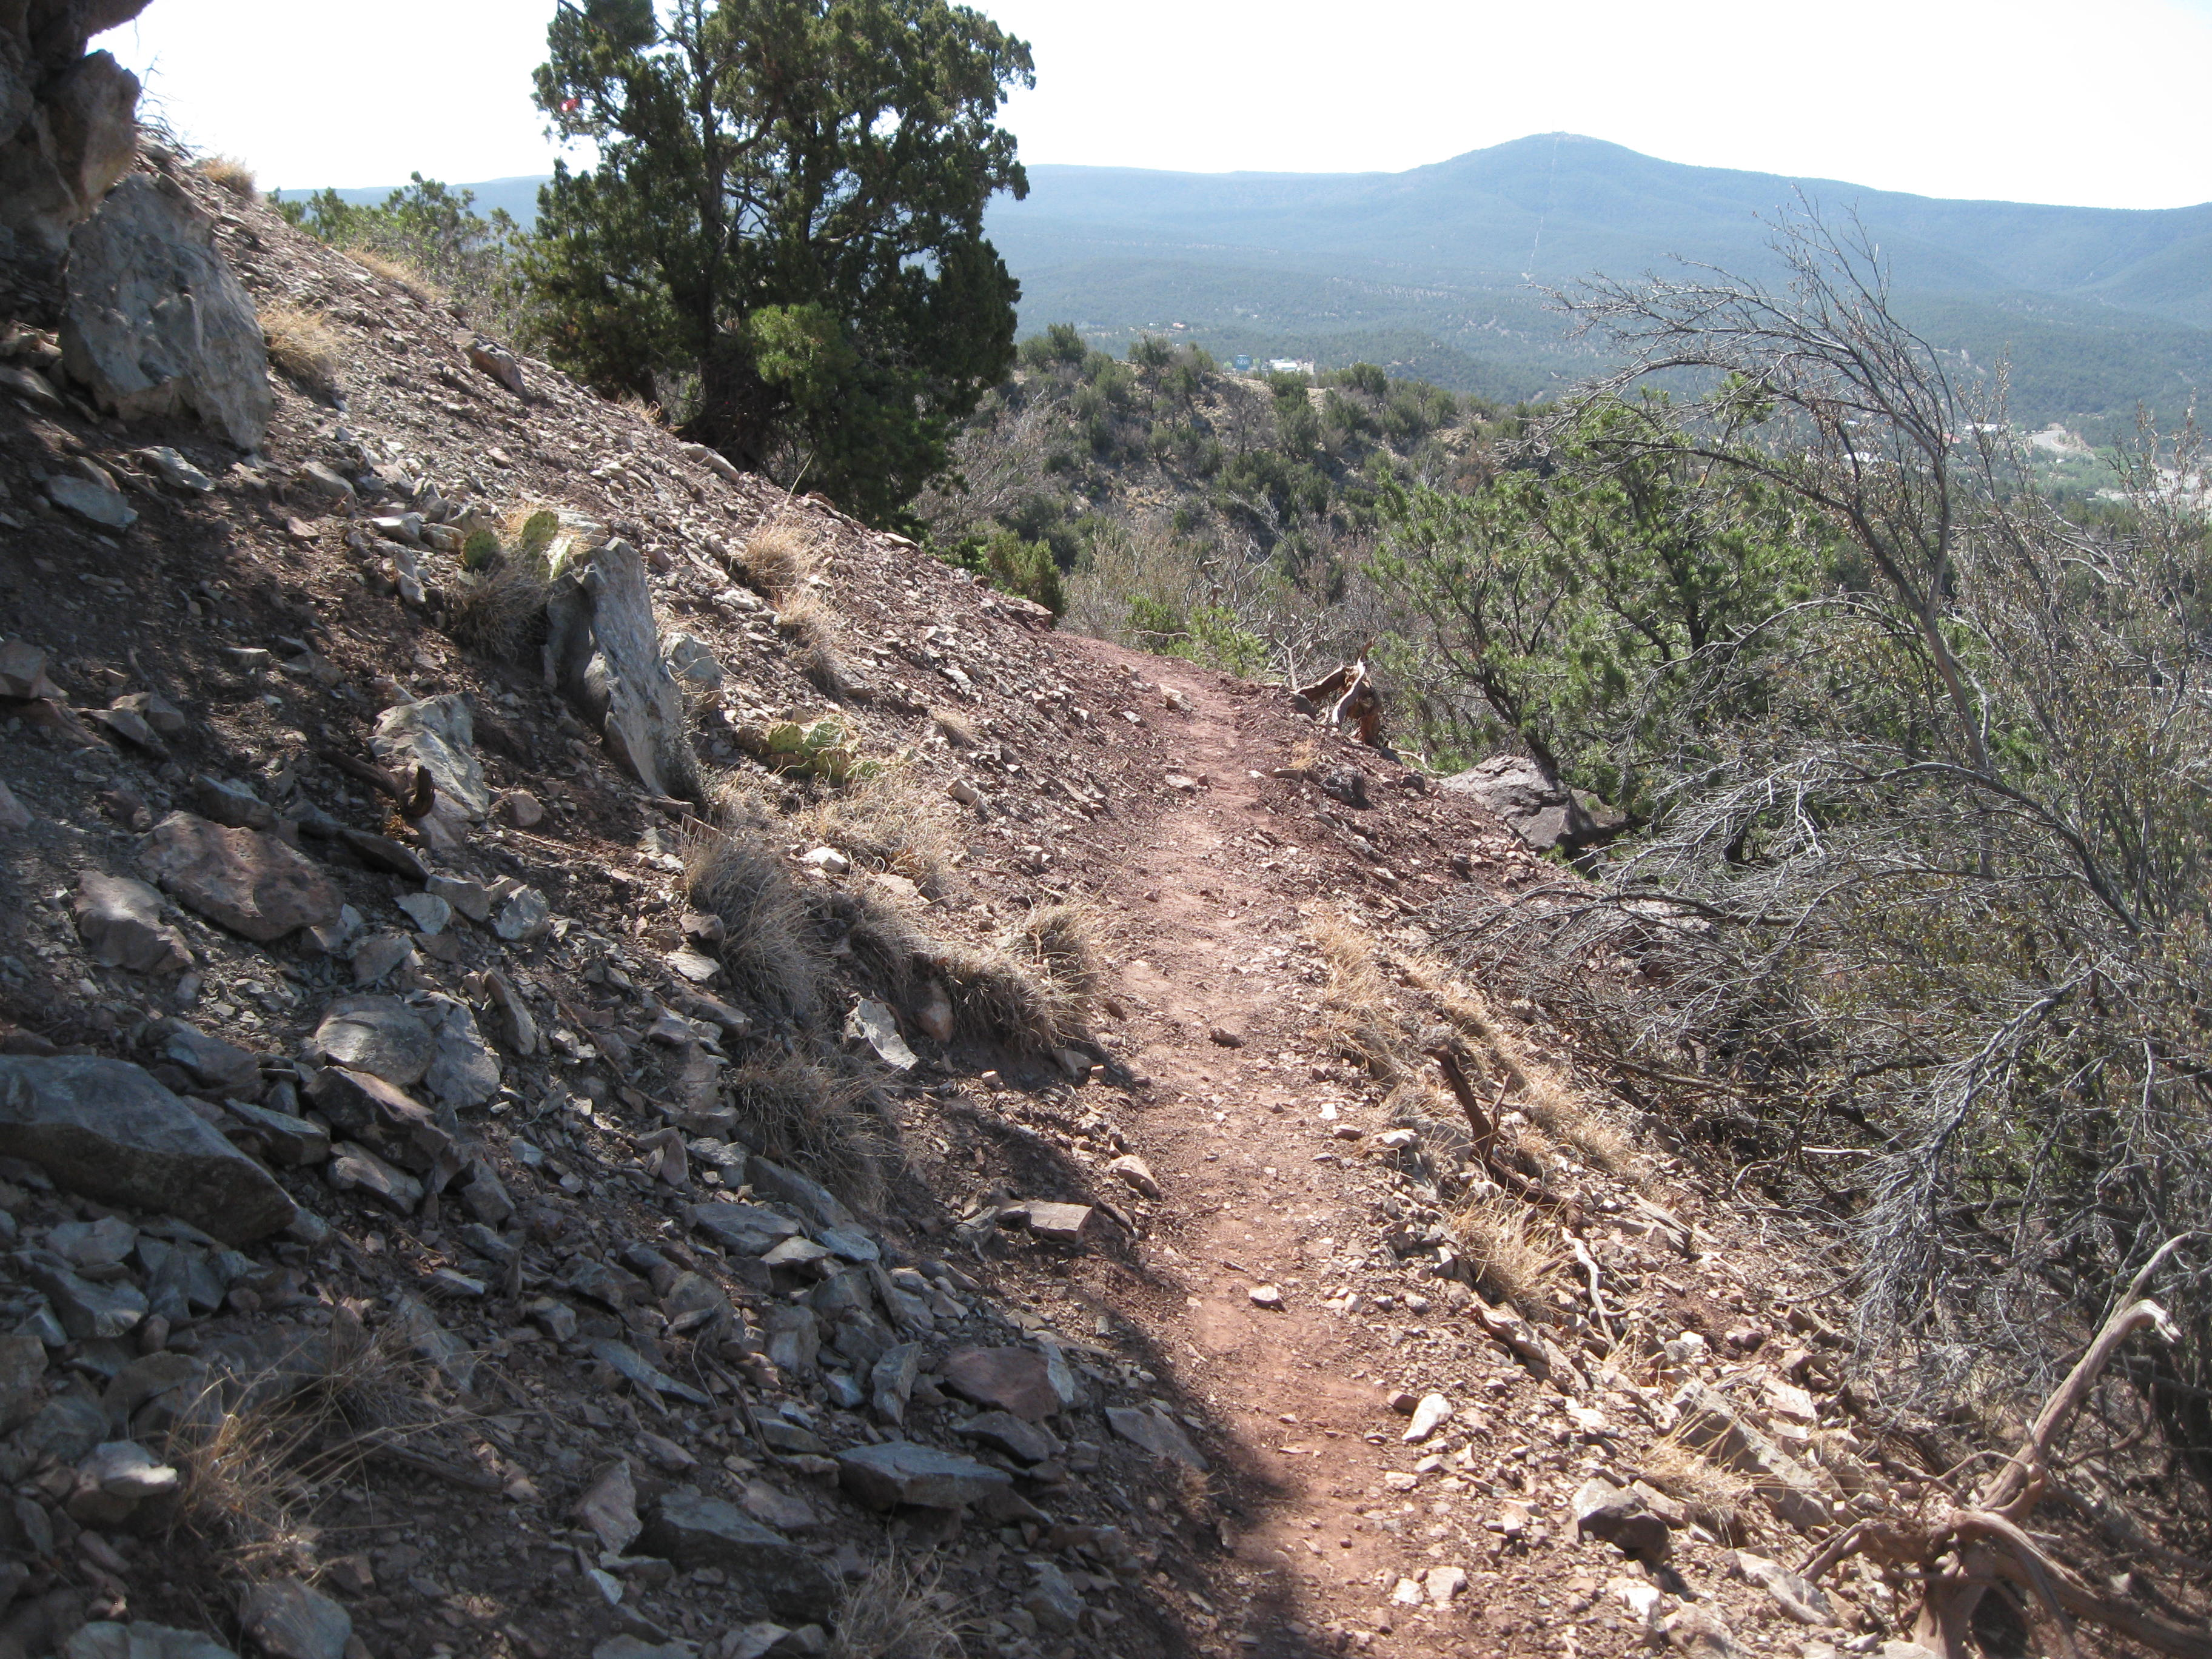 New bike trail at Carlito Springs OS built with little land disturbance